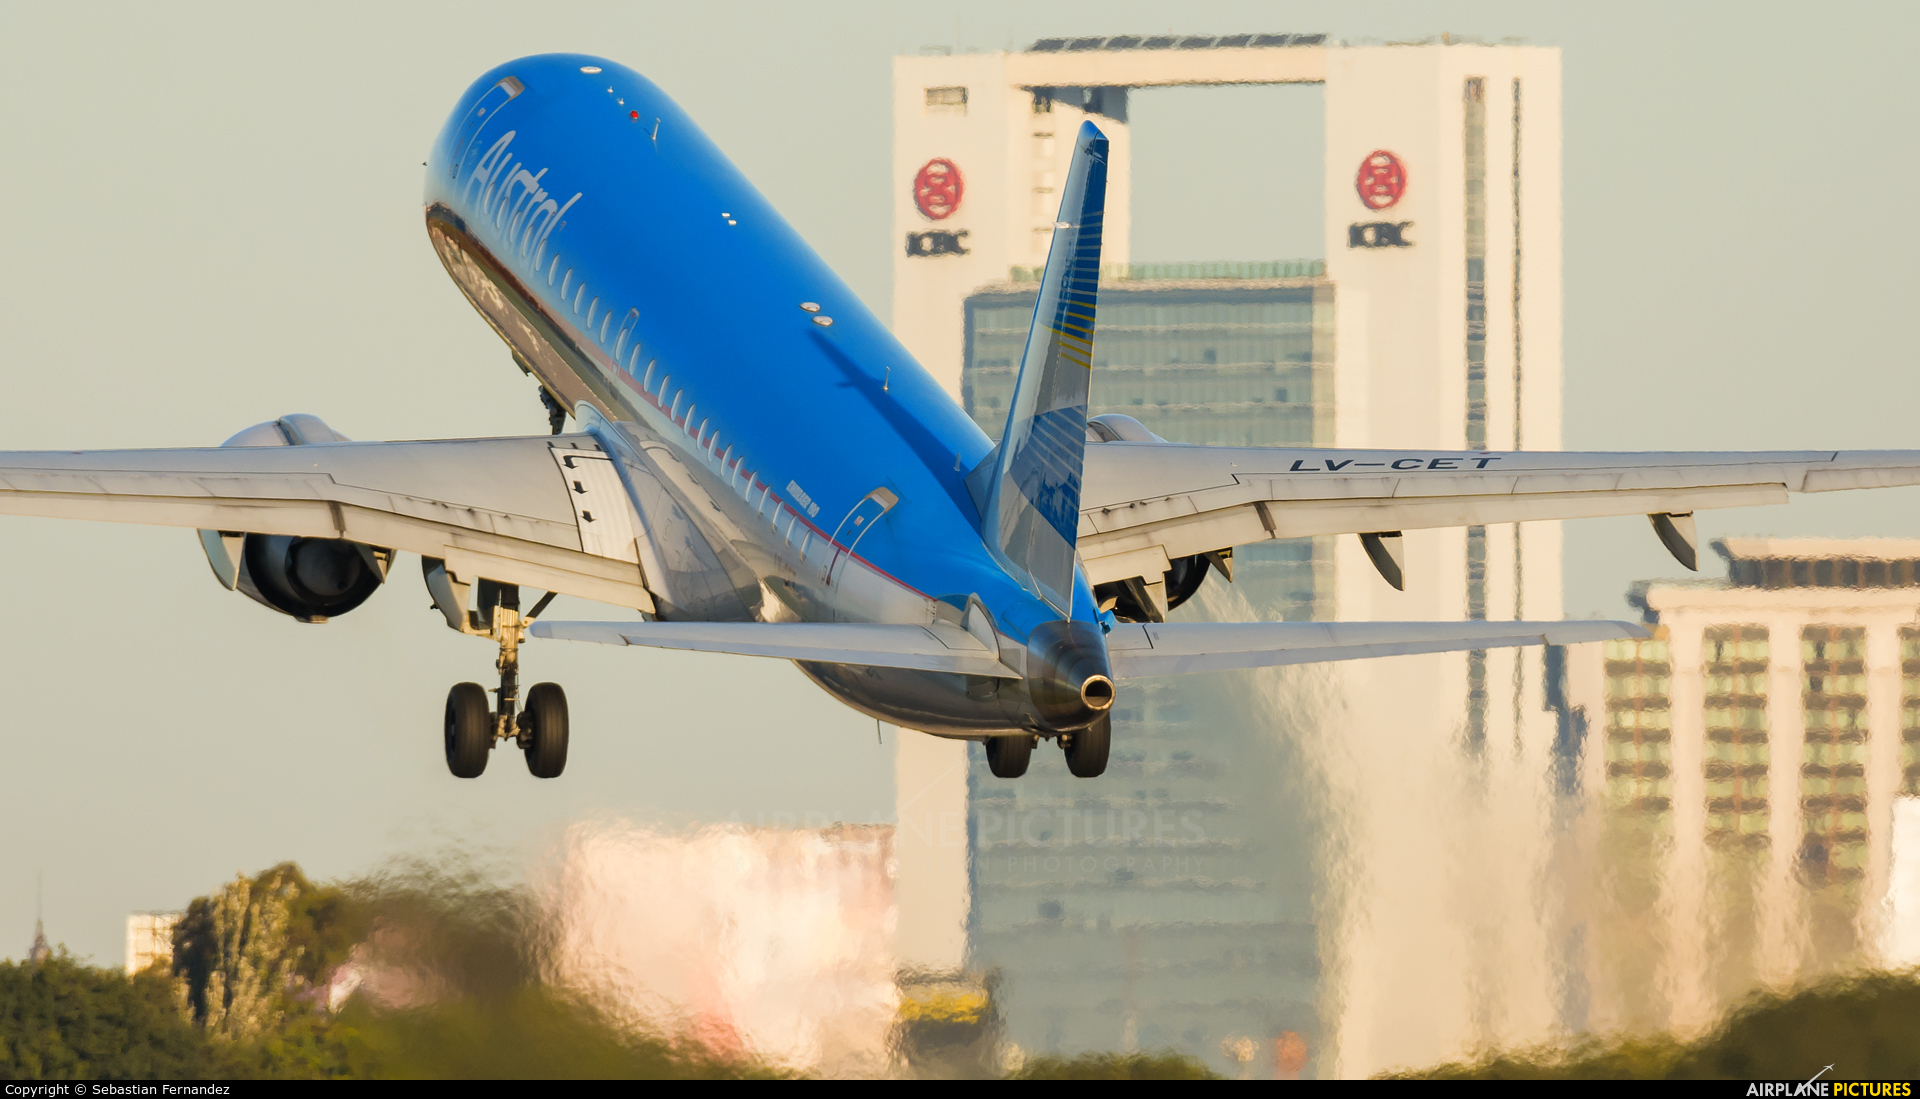 Austral Lineas Aereas LV-CET aircraft at Buenos Aires - Jorge Newbery